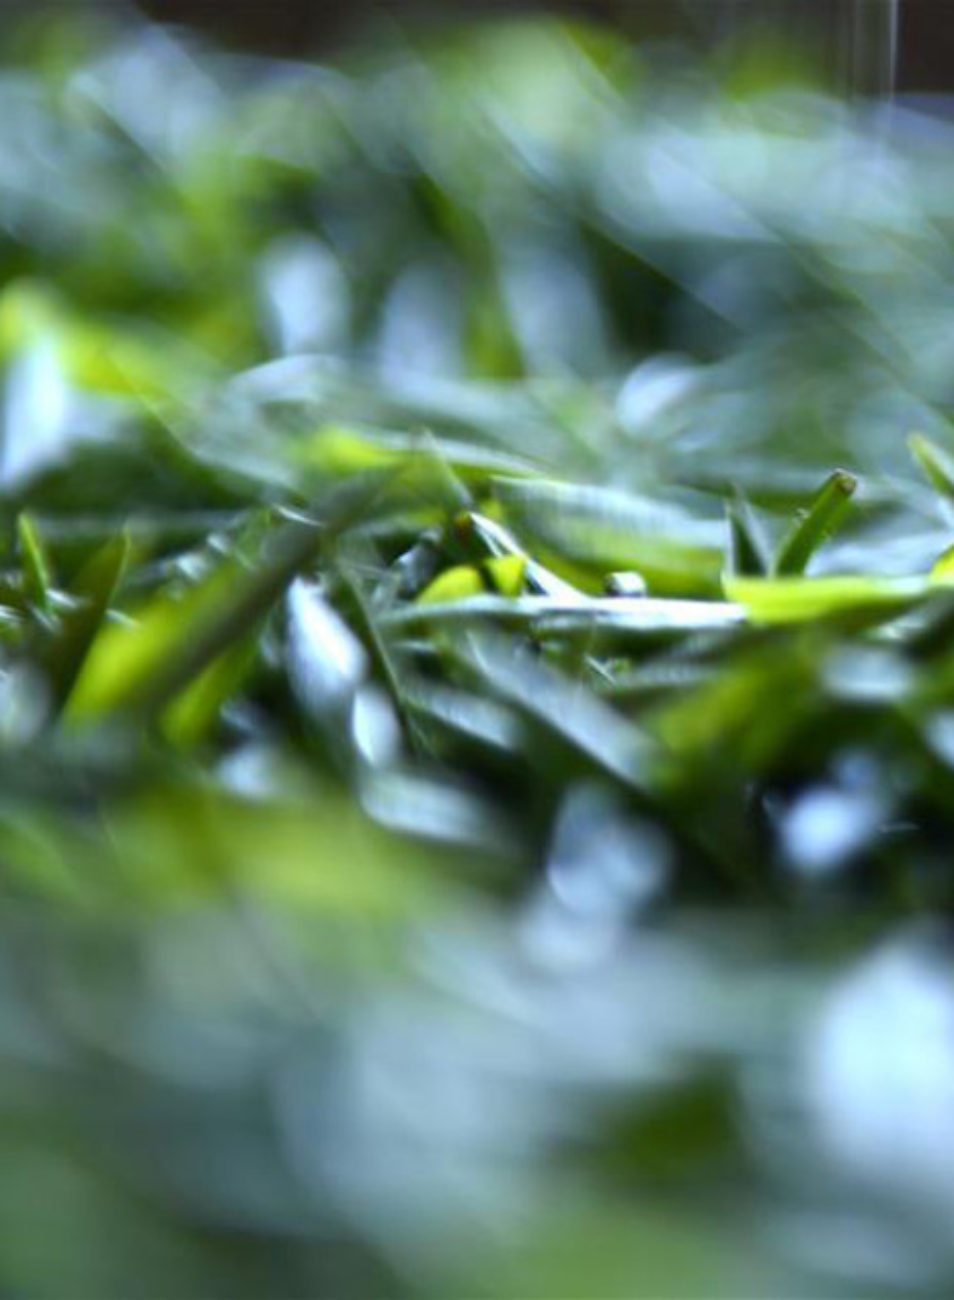 Green Tea Bags on Eyes: What Are The Benefits & Does it Work?